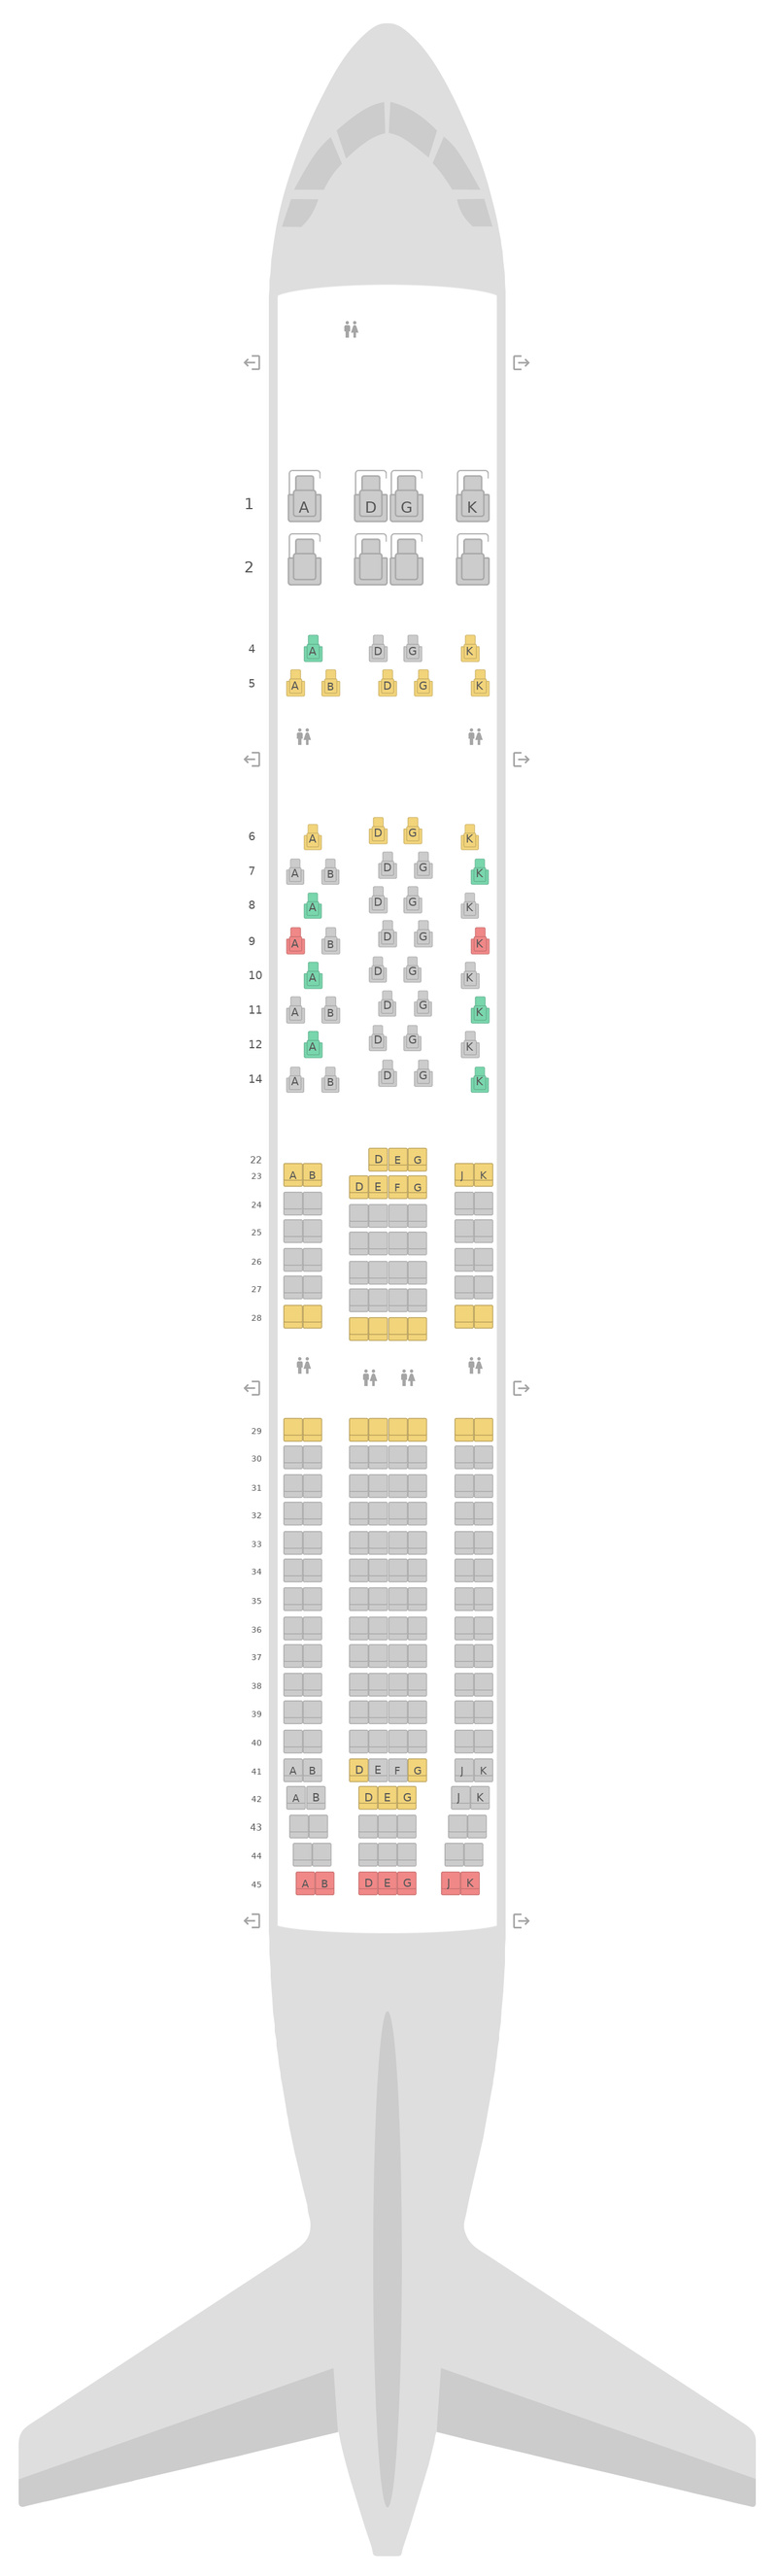 Seat Map Swiss International Air Lines Airbus A330-300 (333)